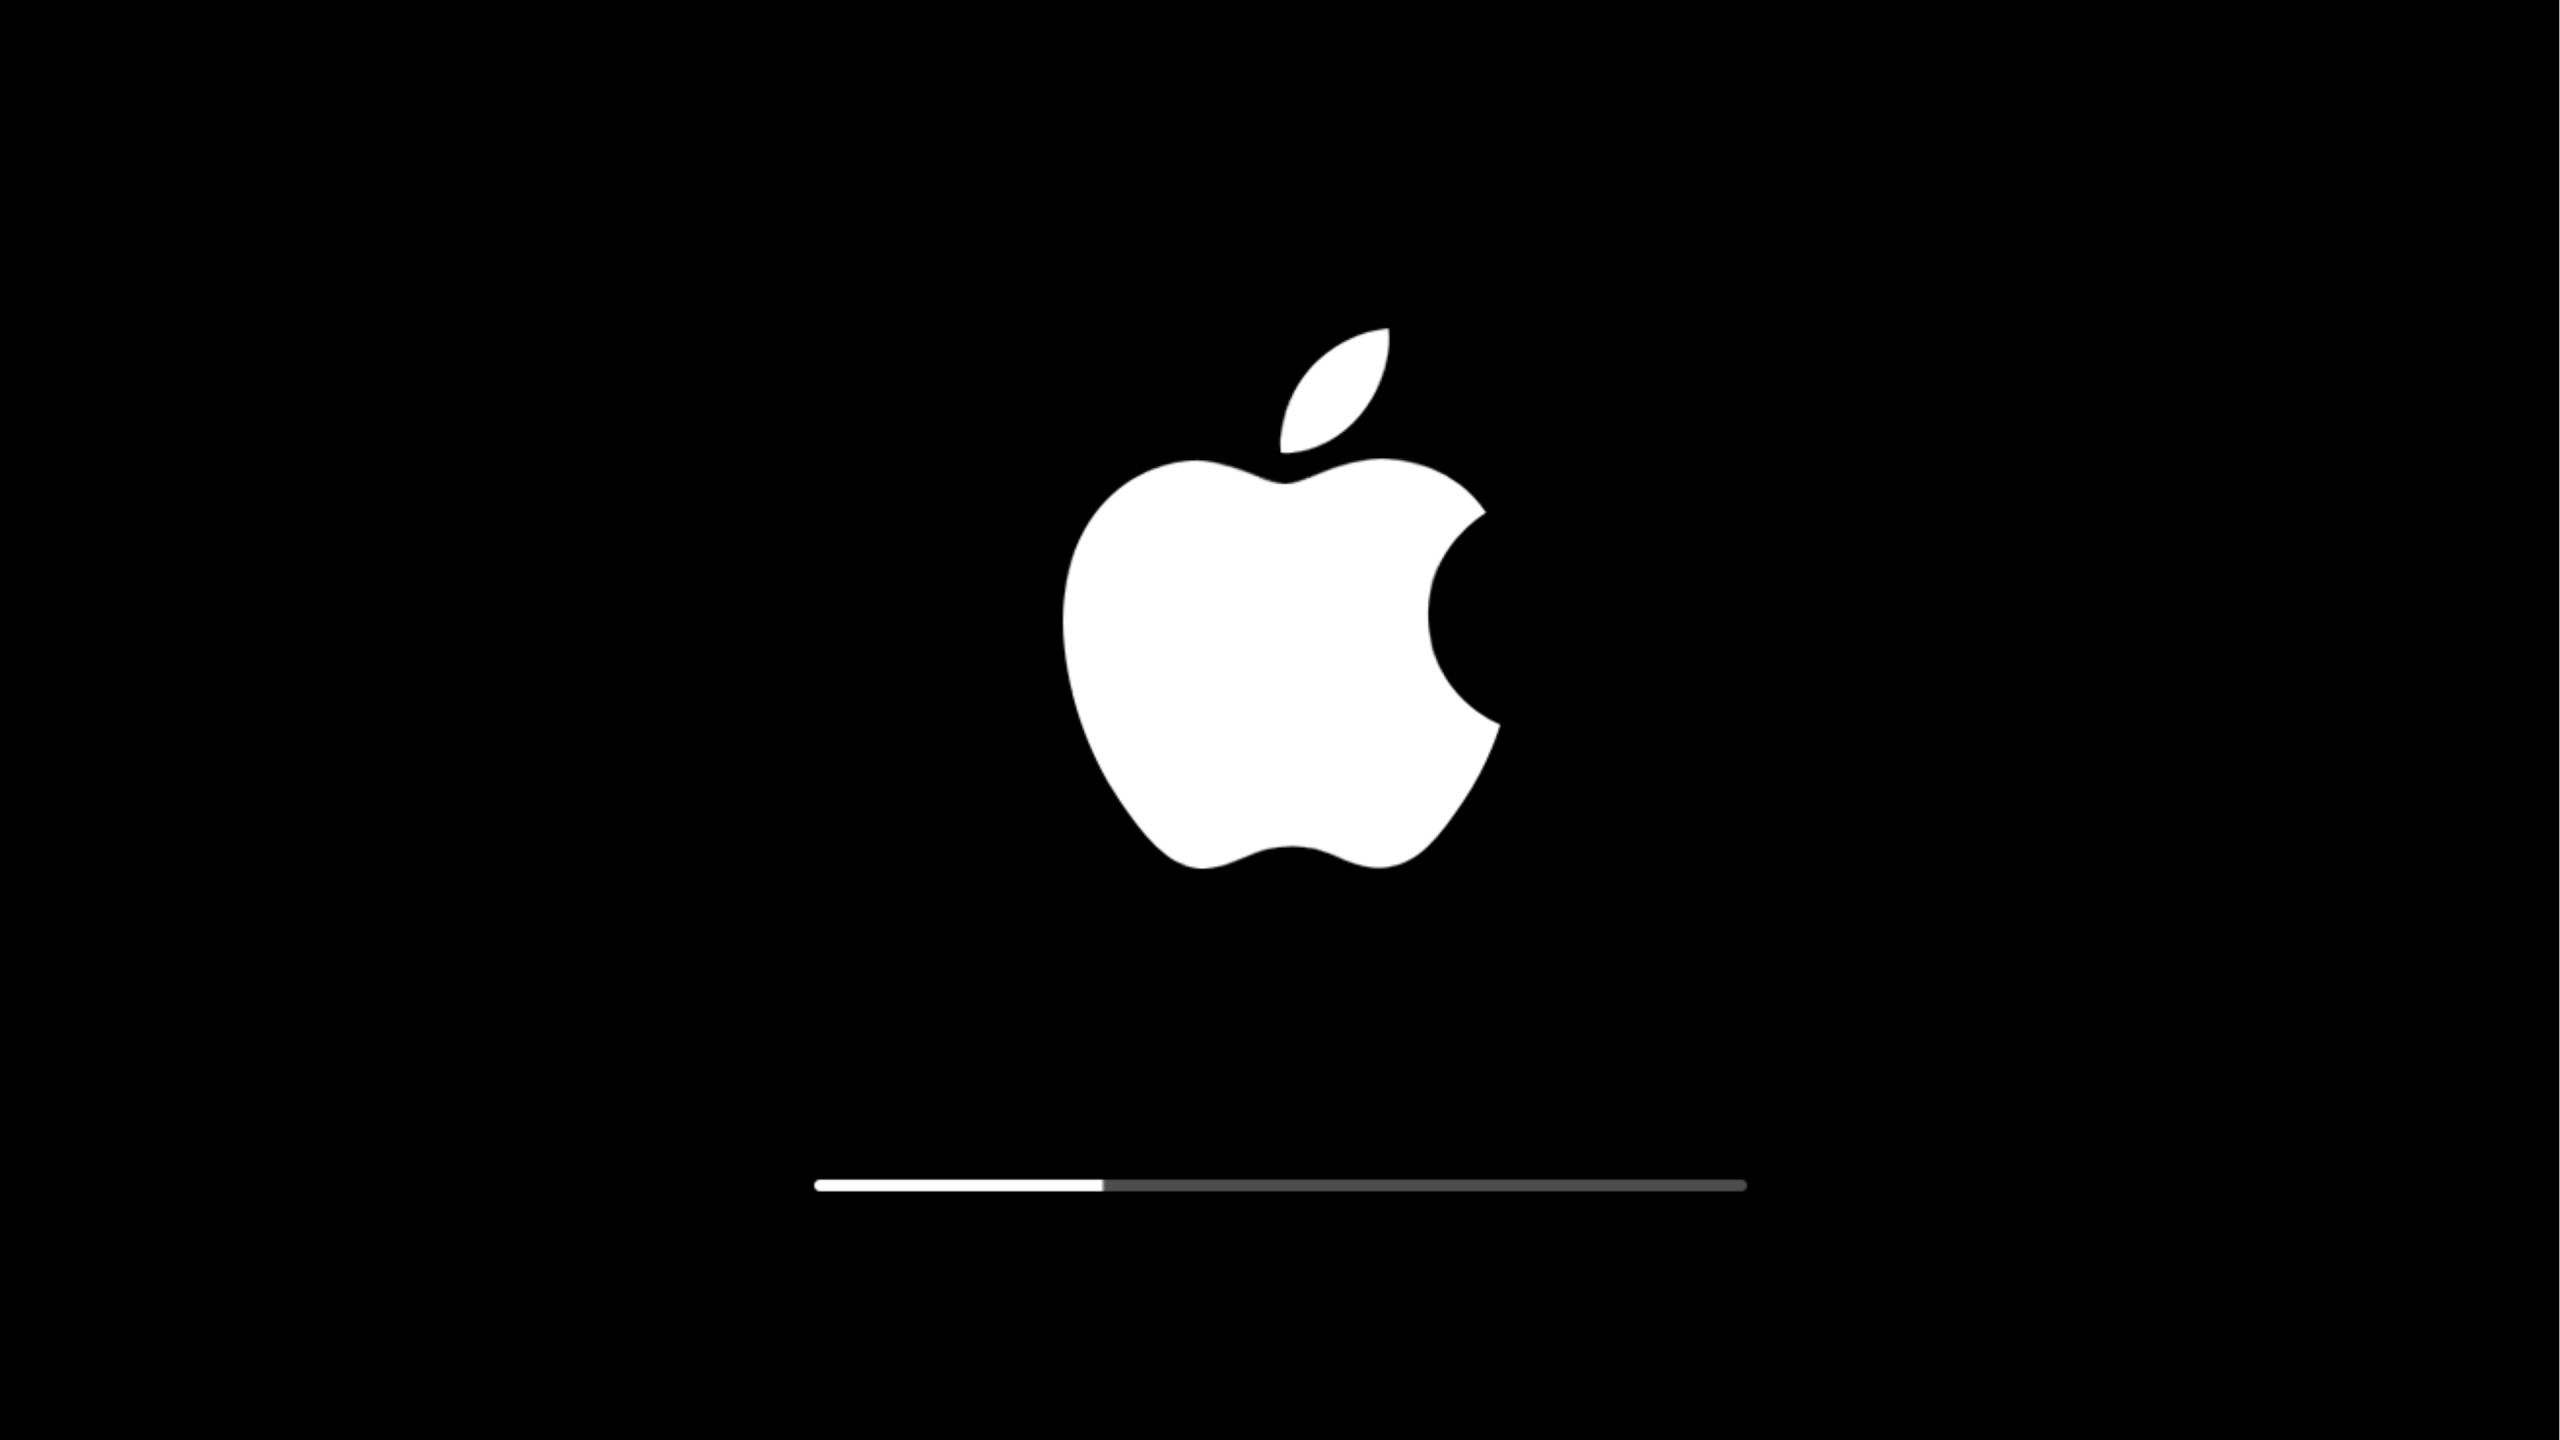 Black And White Apple Wallpaper 72 Pictures